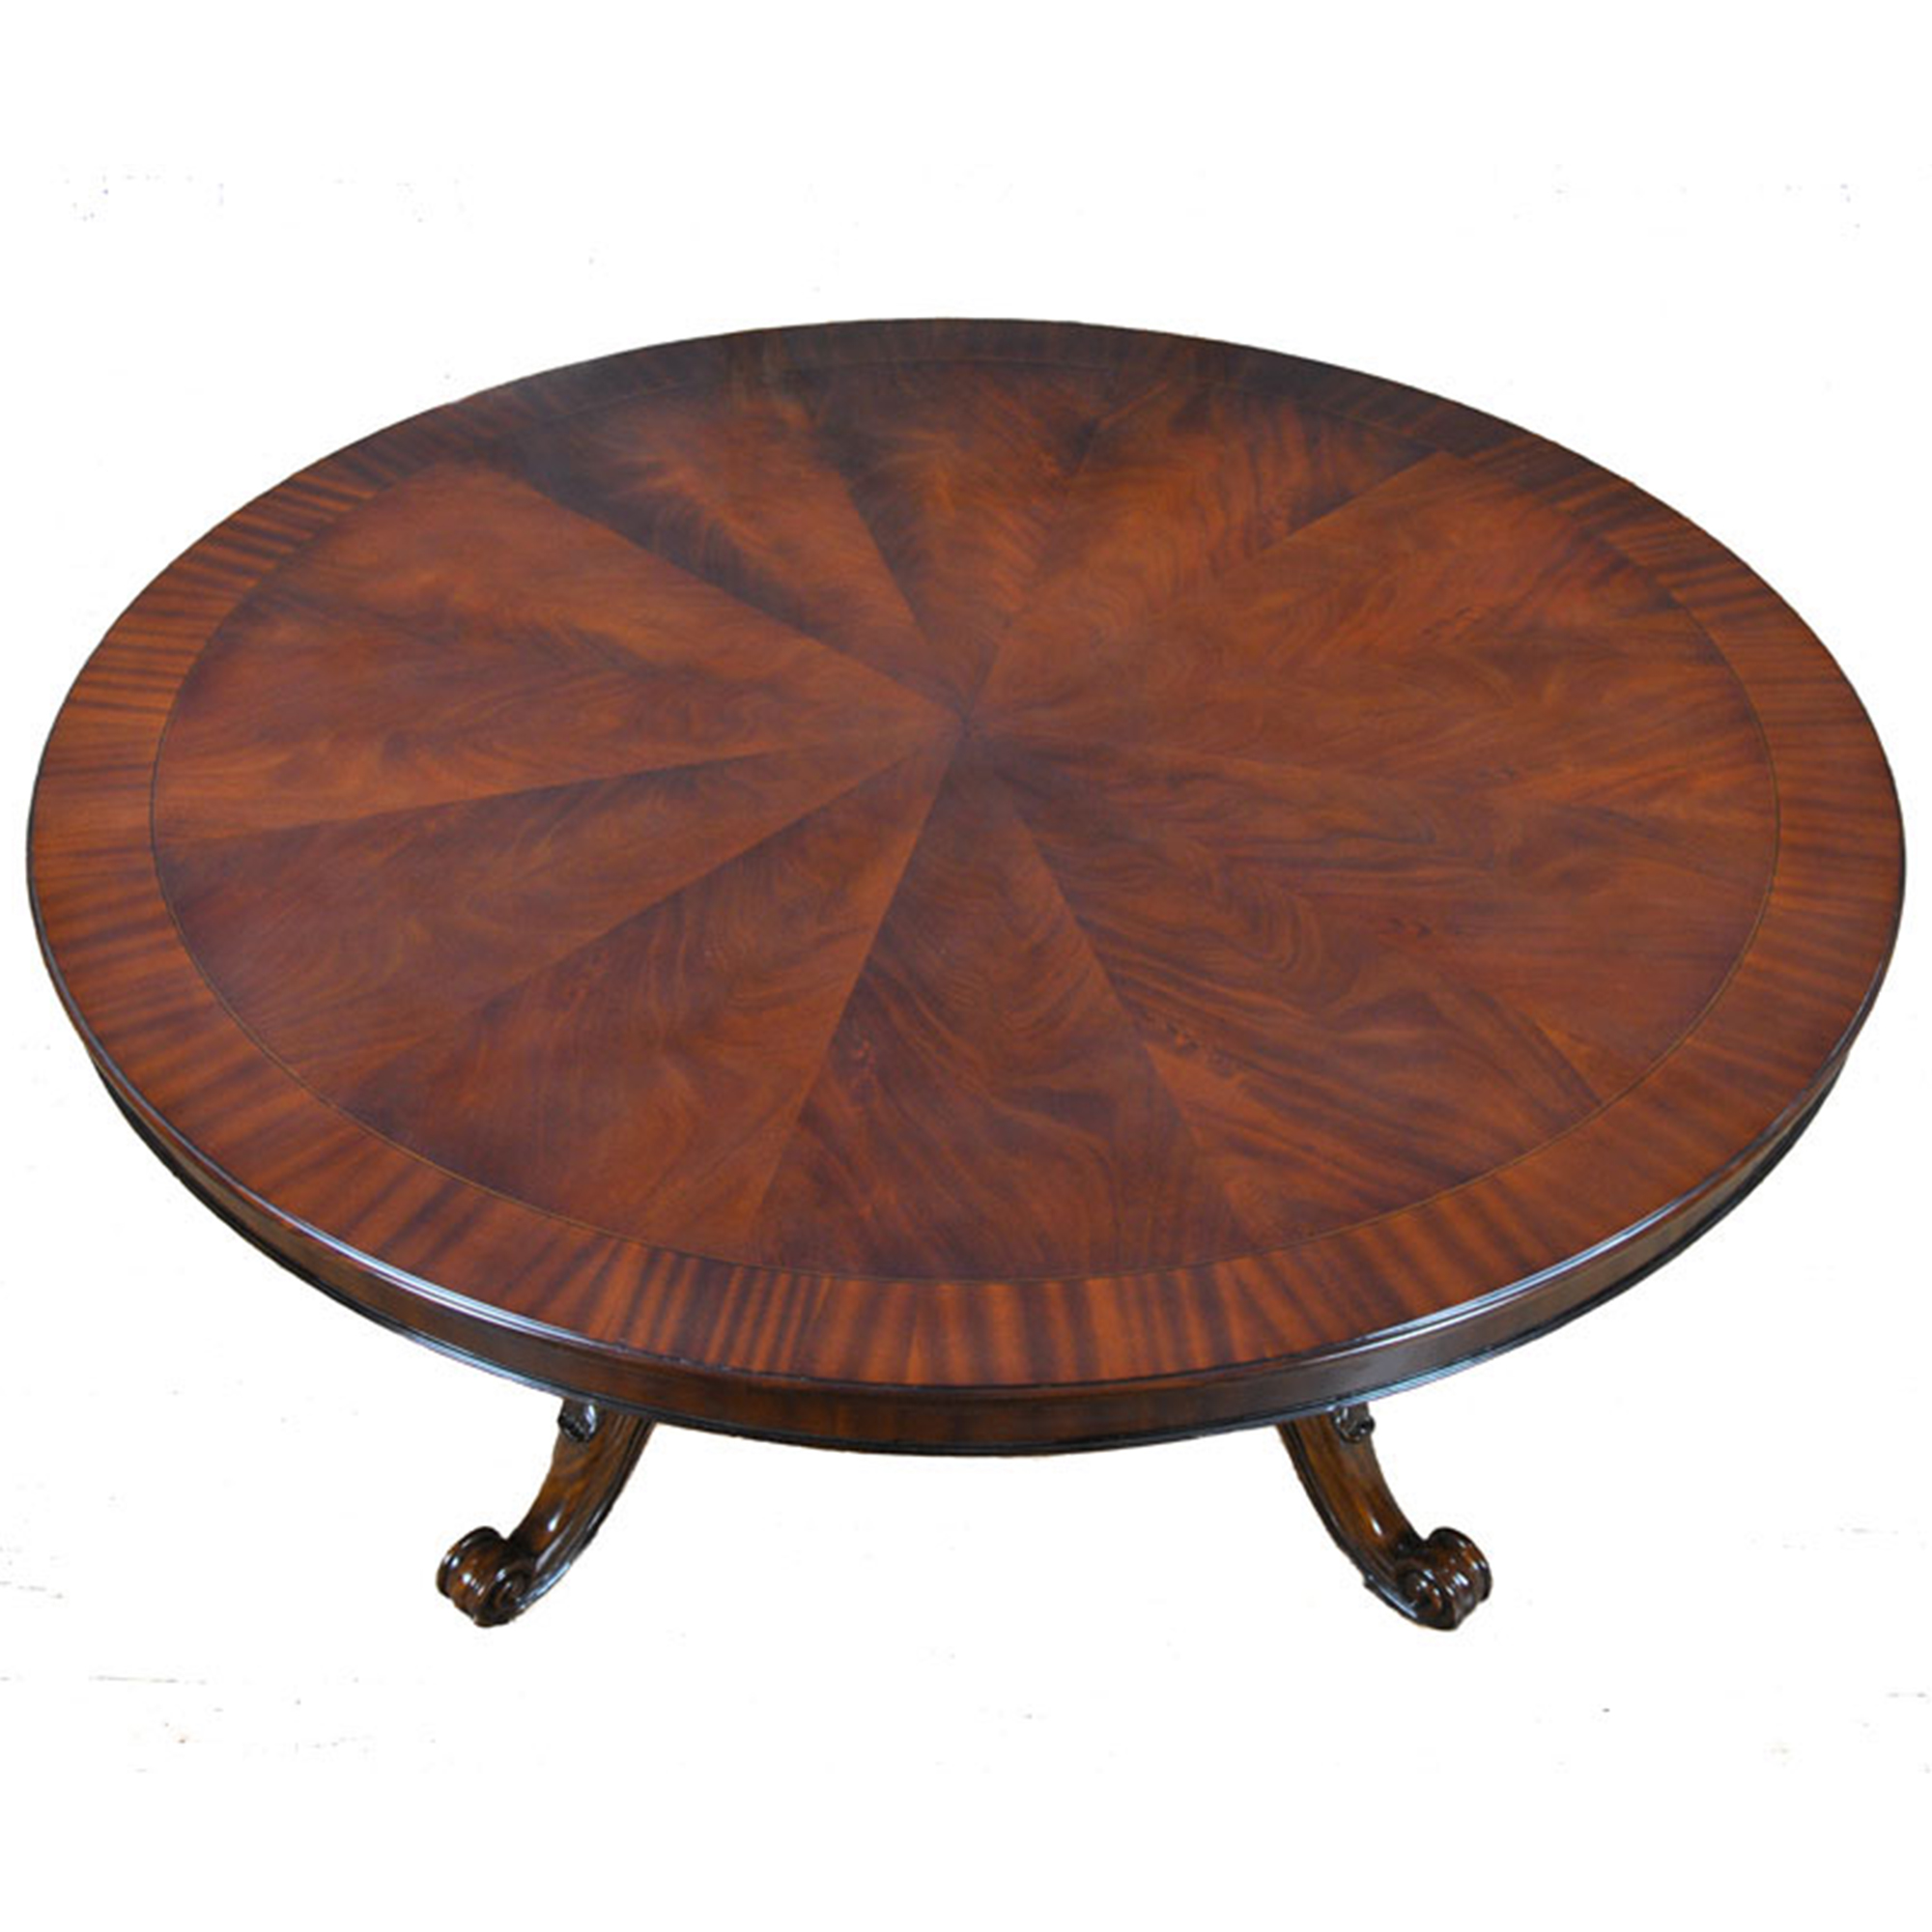 Home  Furniture  Dining Room  Tables  72 Inch Round. Feng Shui Window Behind Desk. Desk Clock. Outdoor Grill Table. Bar Pool Table